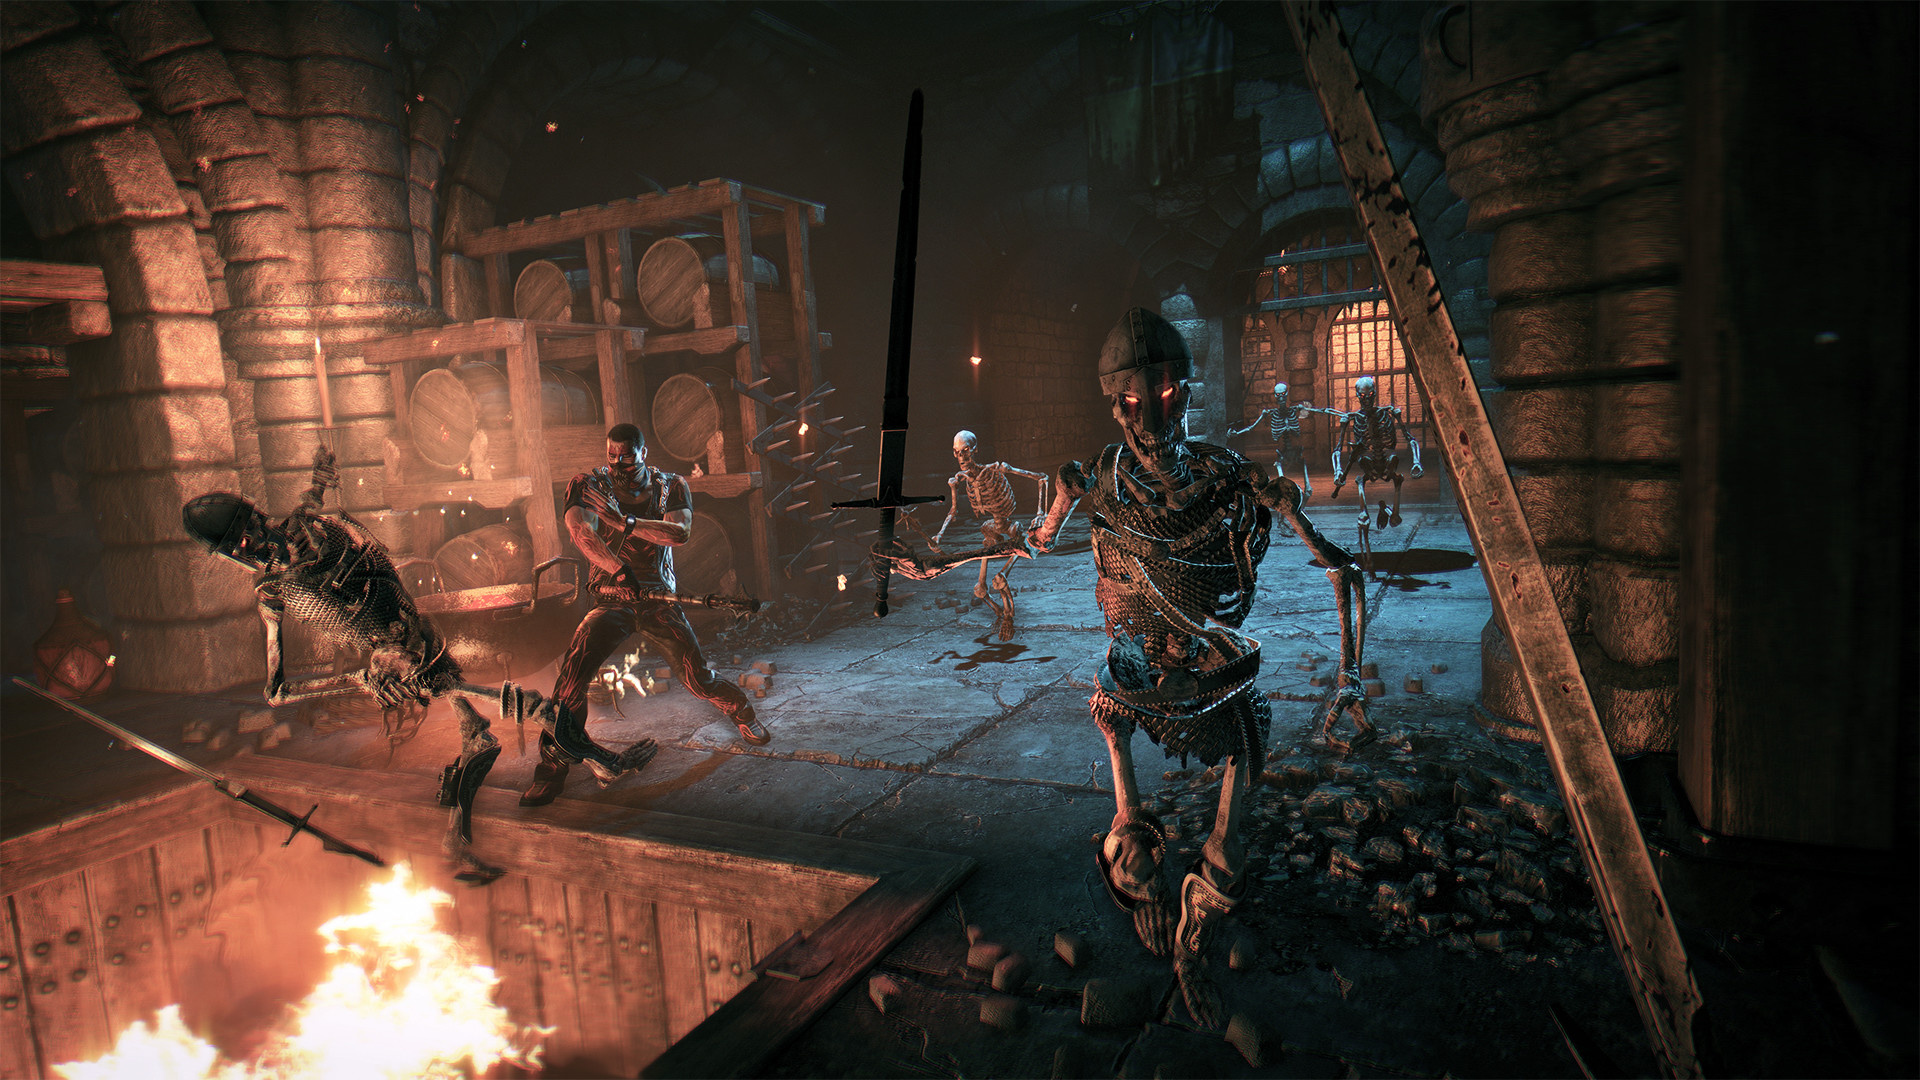 Авторы Dying Light выпустили первое обновление для дополнения Hellraid